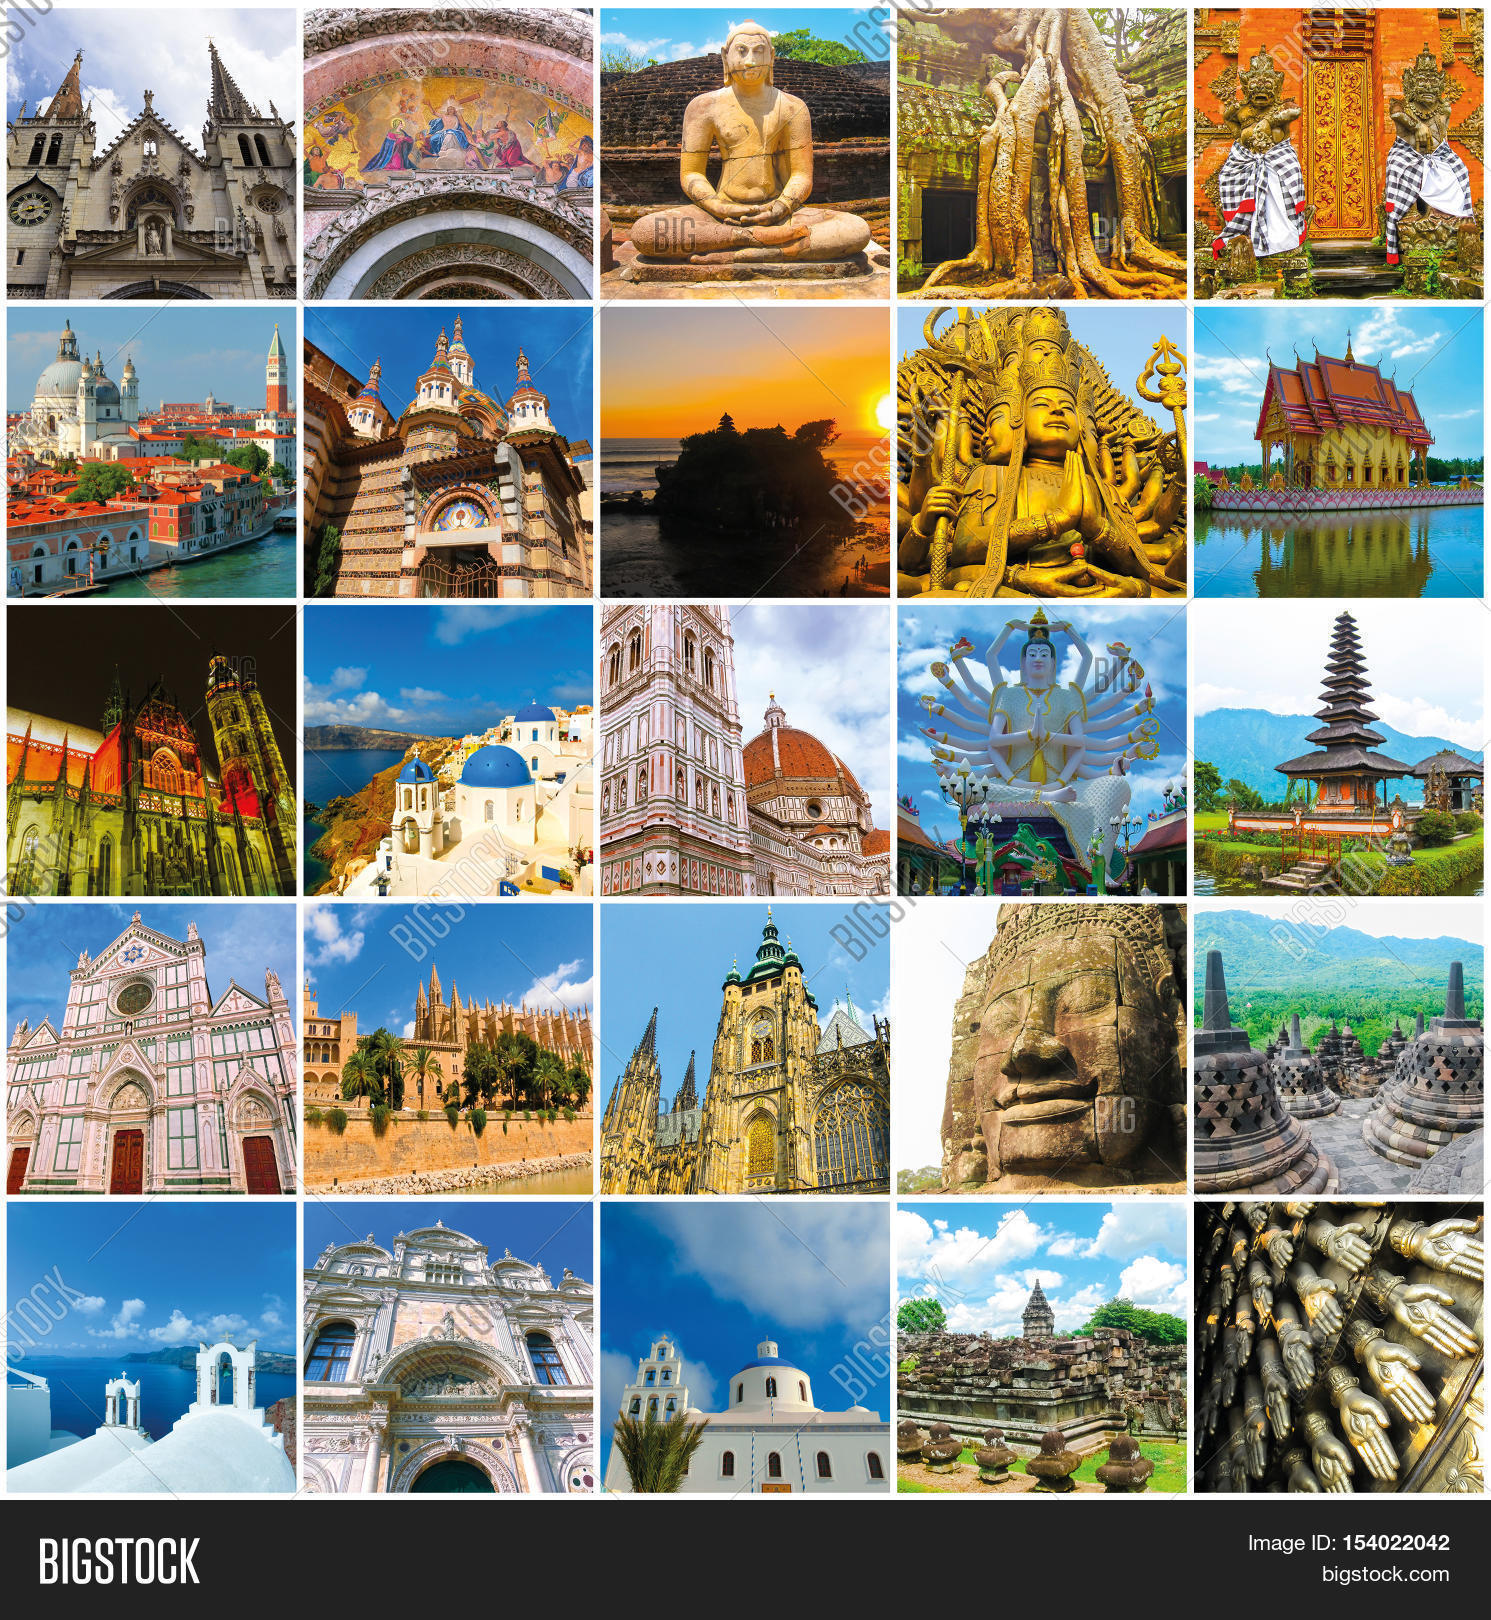 World Monuments Image Photo Free Trial